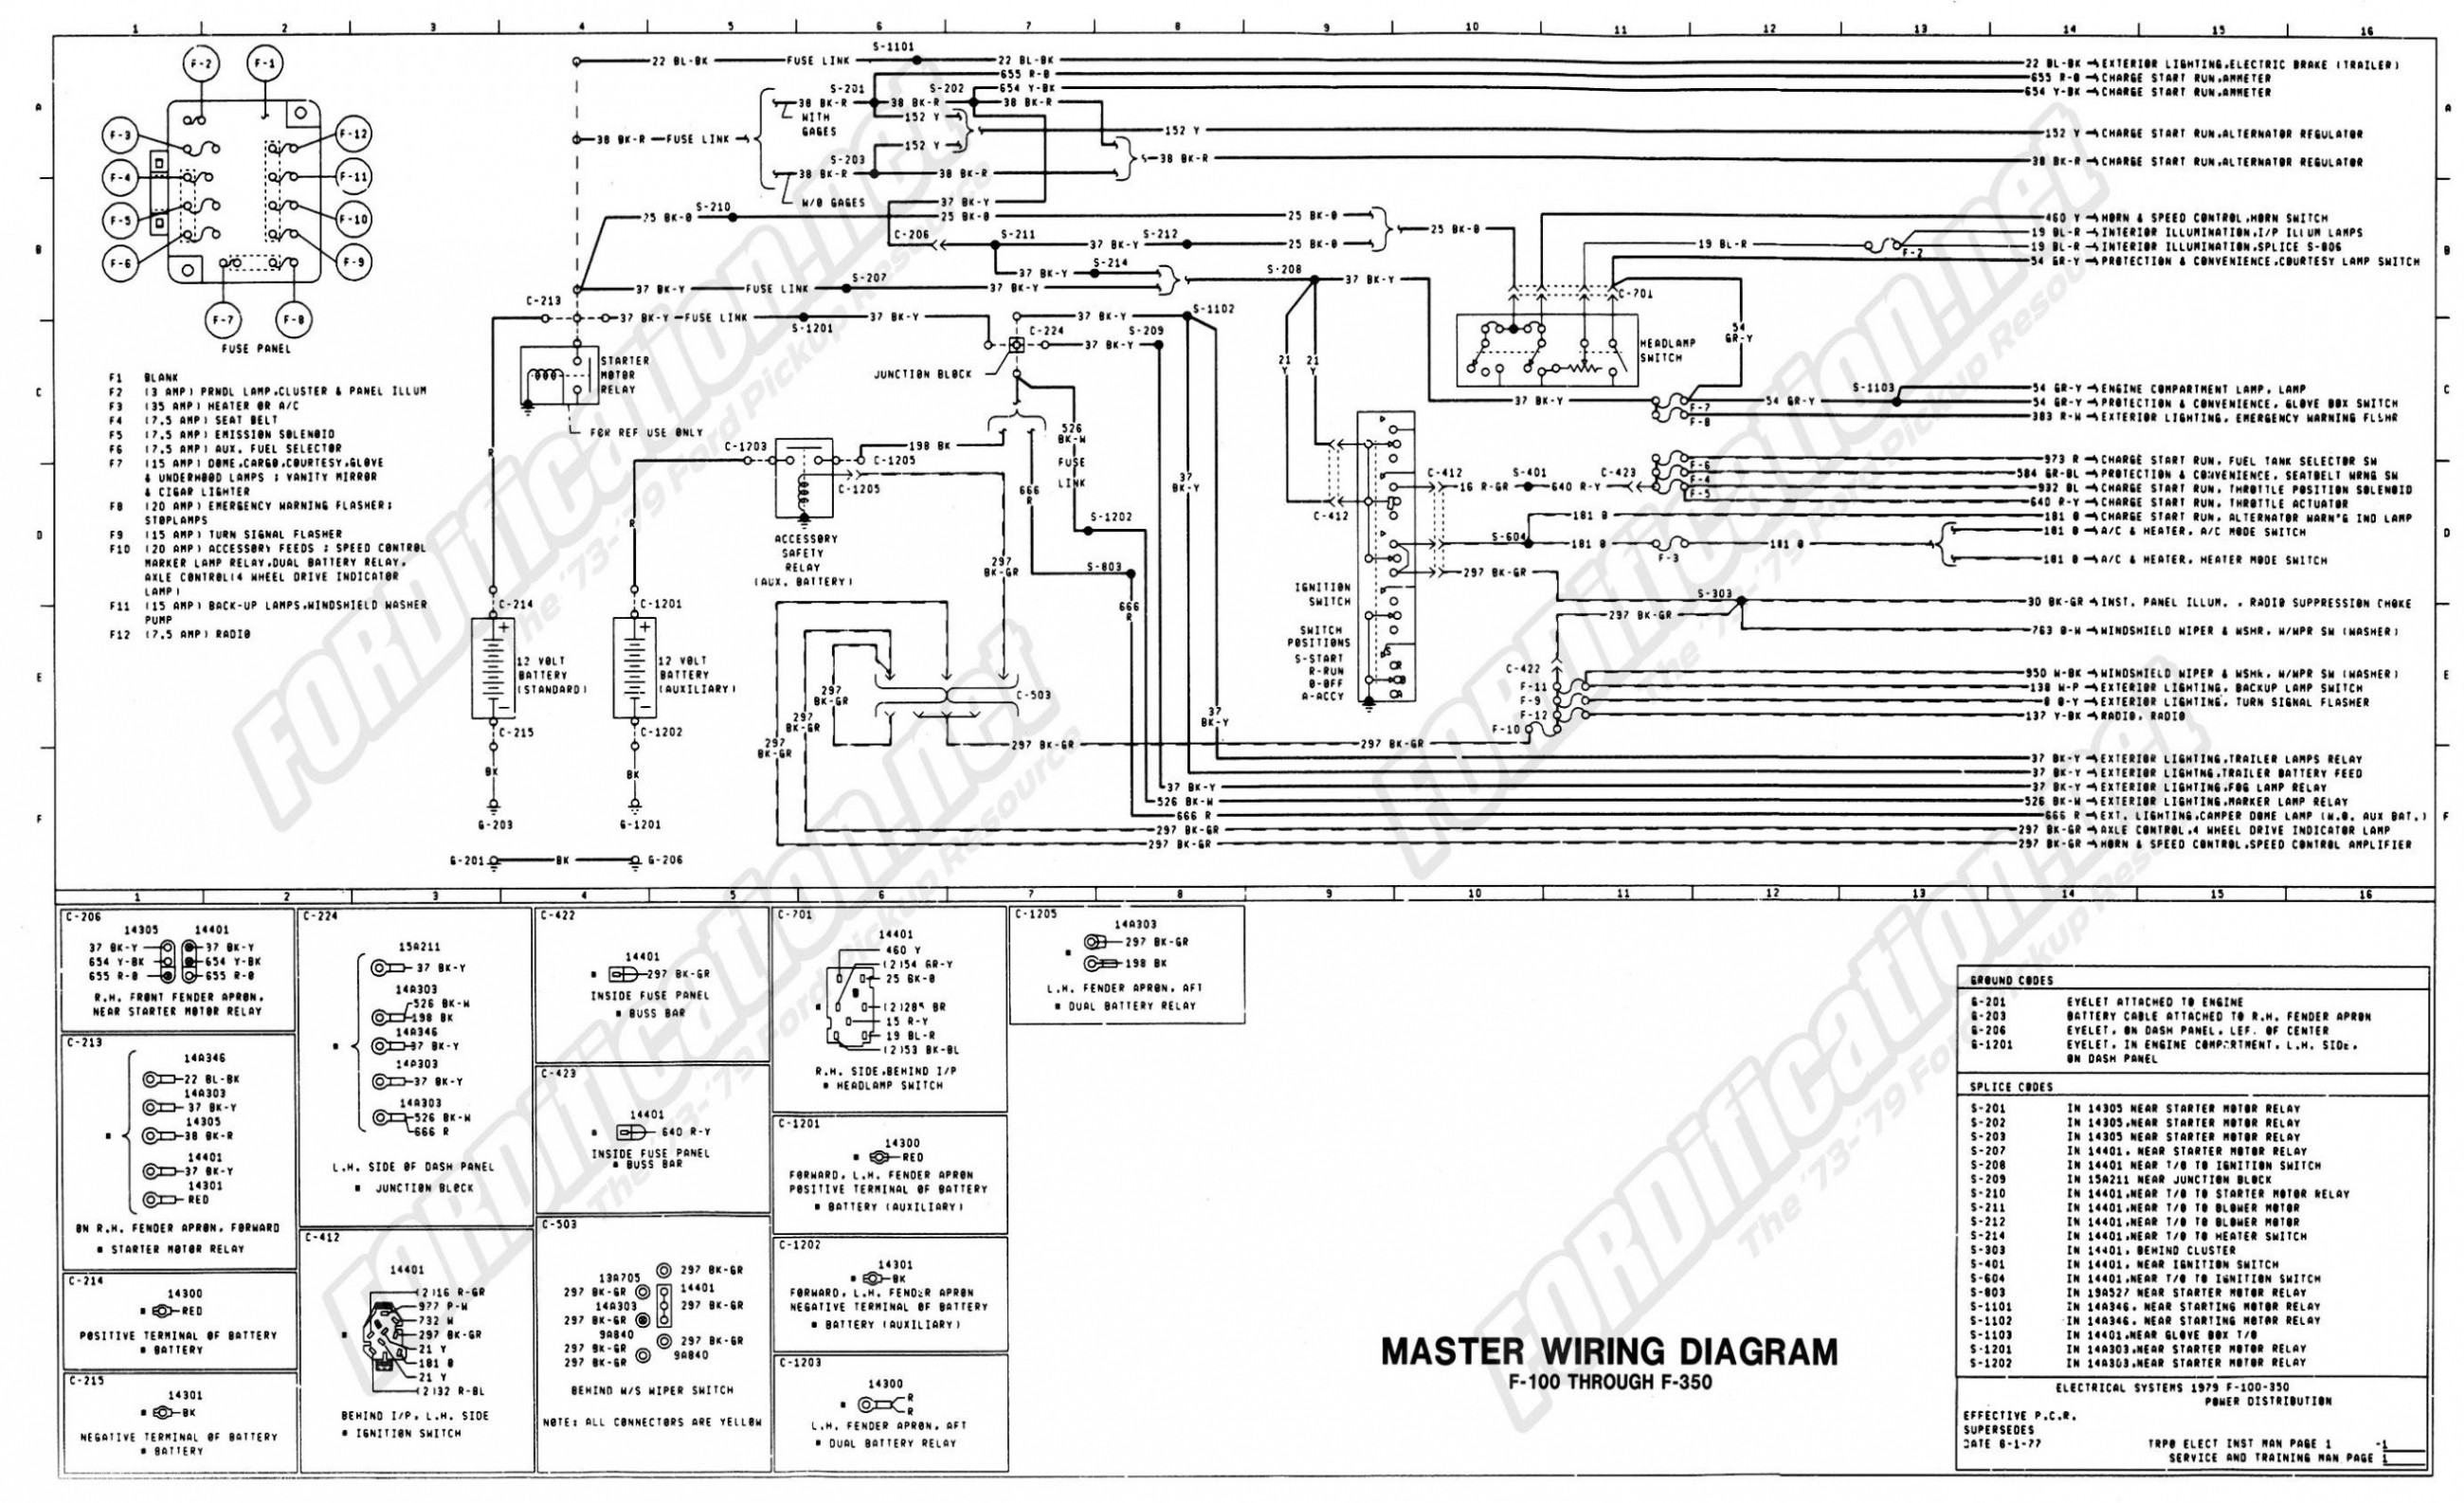 1991 ford F150 Engine Diagram ford F150 Starter solenoid Wiring Diagram — Daytonva150 Of 1991 ford F150 Engine Diagram Light Wiring Diagram for 1995 F150 Trusted Wiring Diagrams •